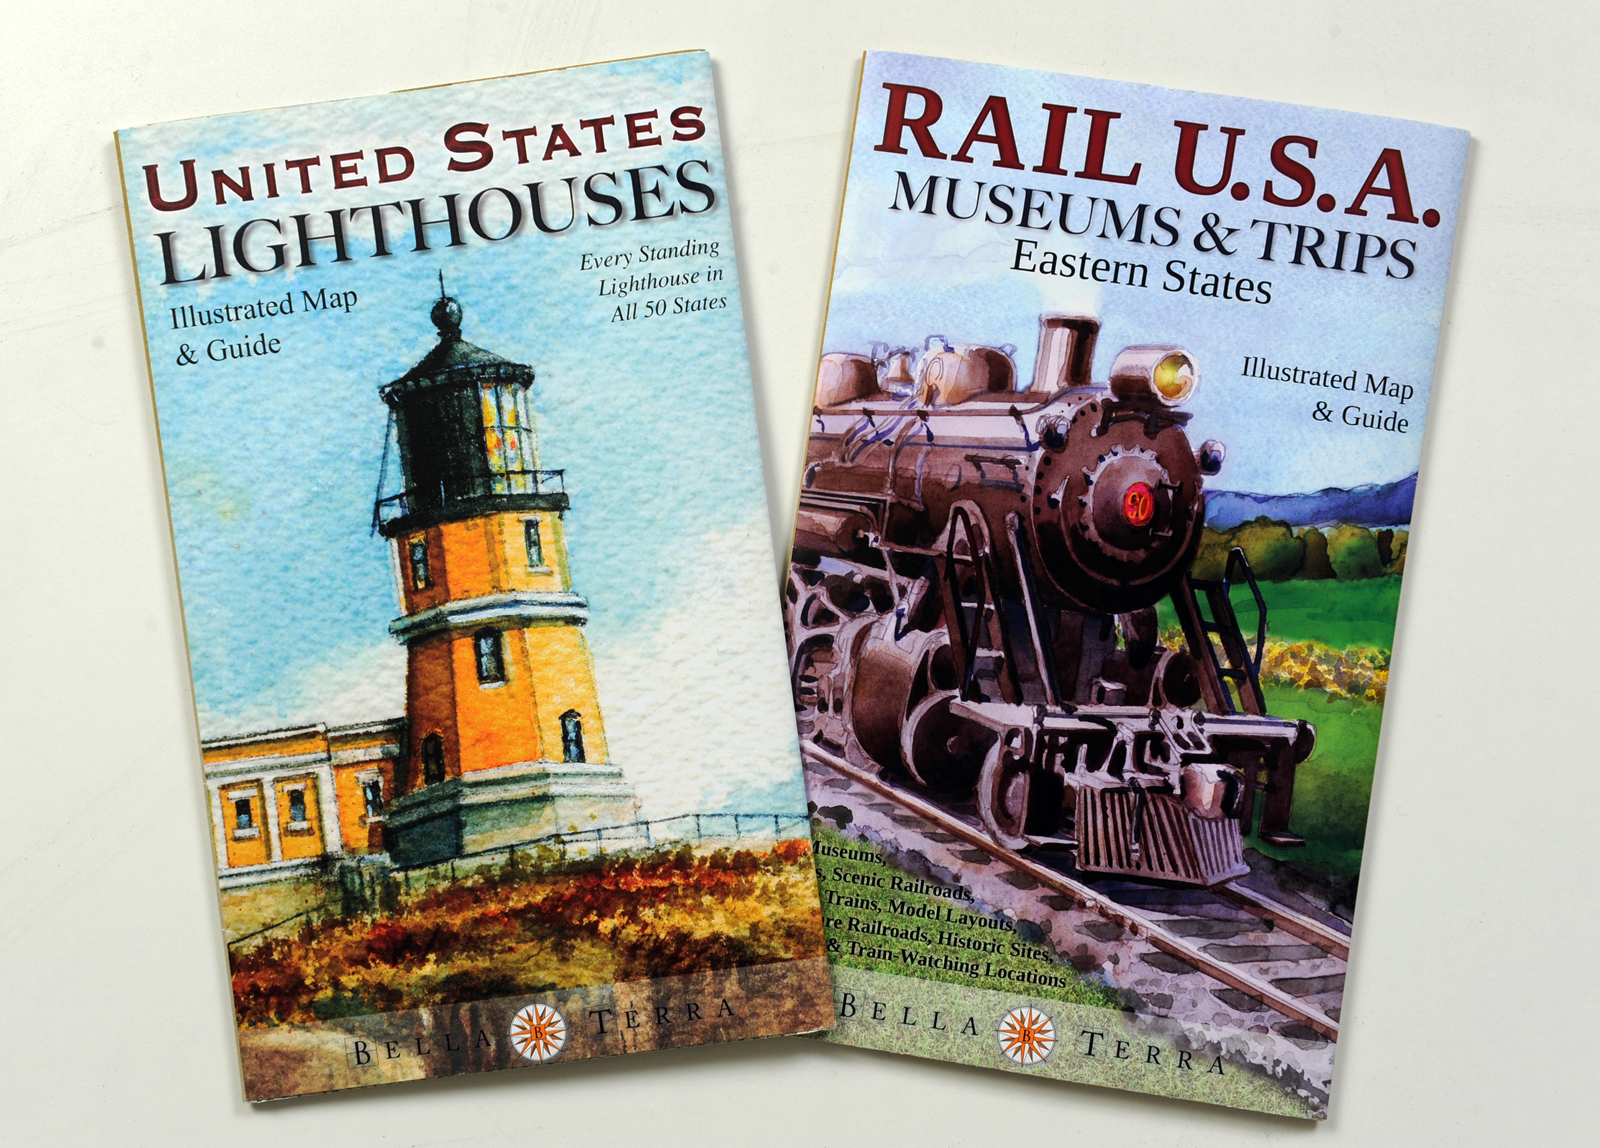 Lighthouses vintage trains subjects for bella terra map publishers